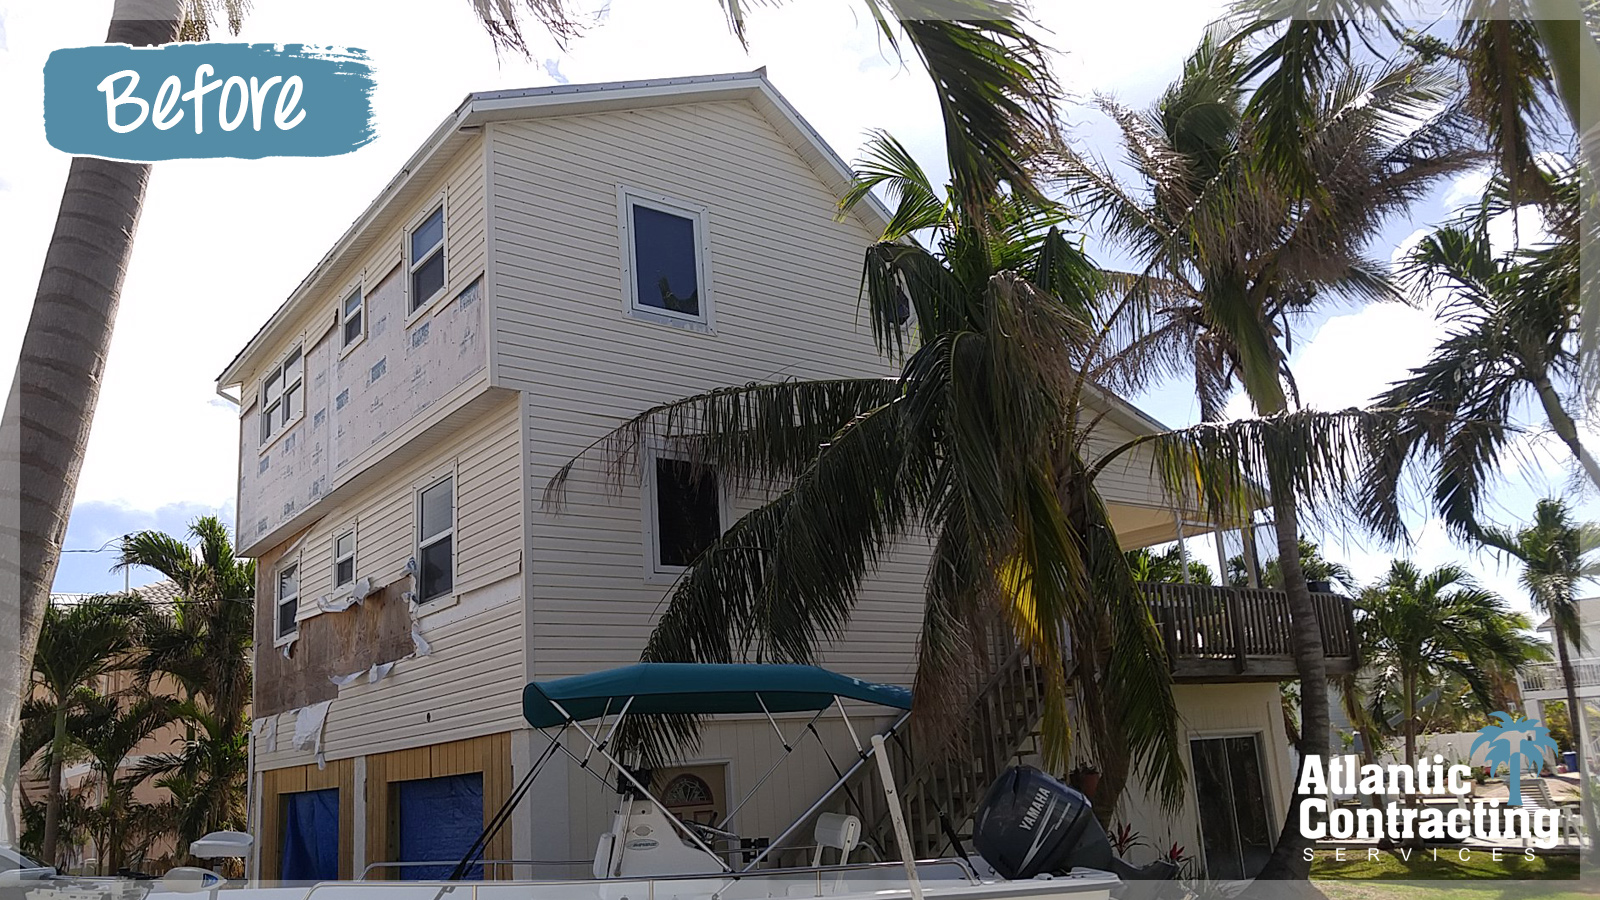 Cudjoe Key Fl Atlantic Contracting Services Serving New